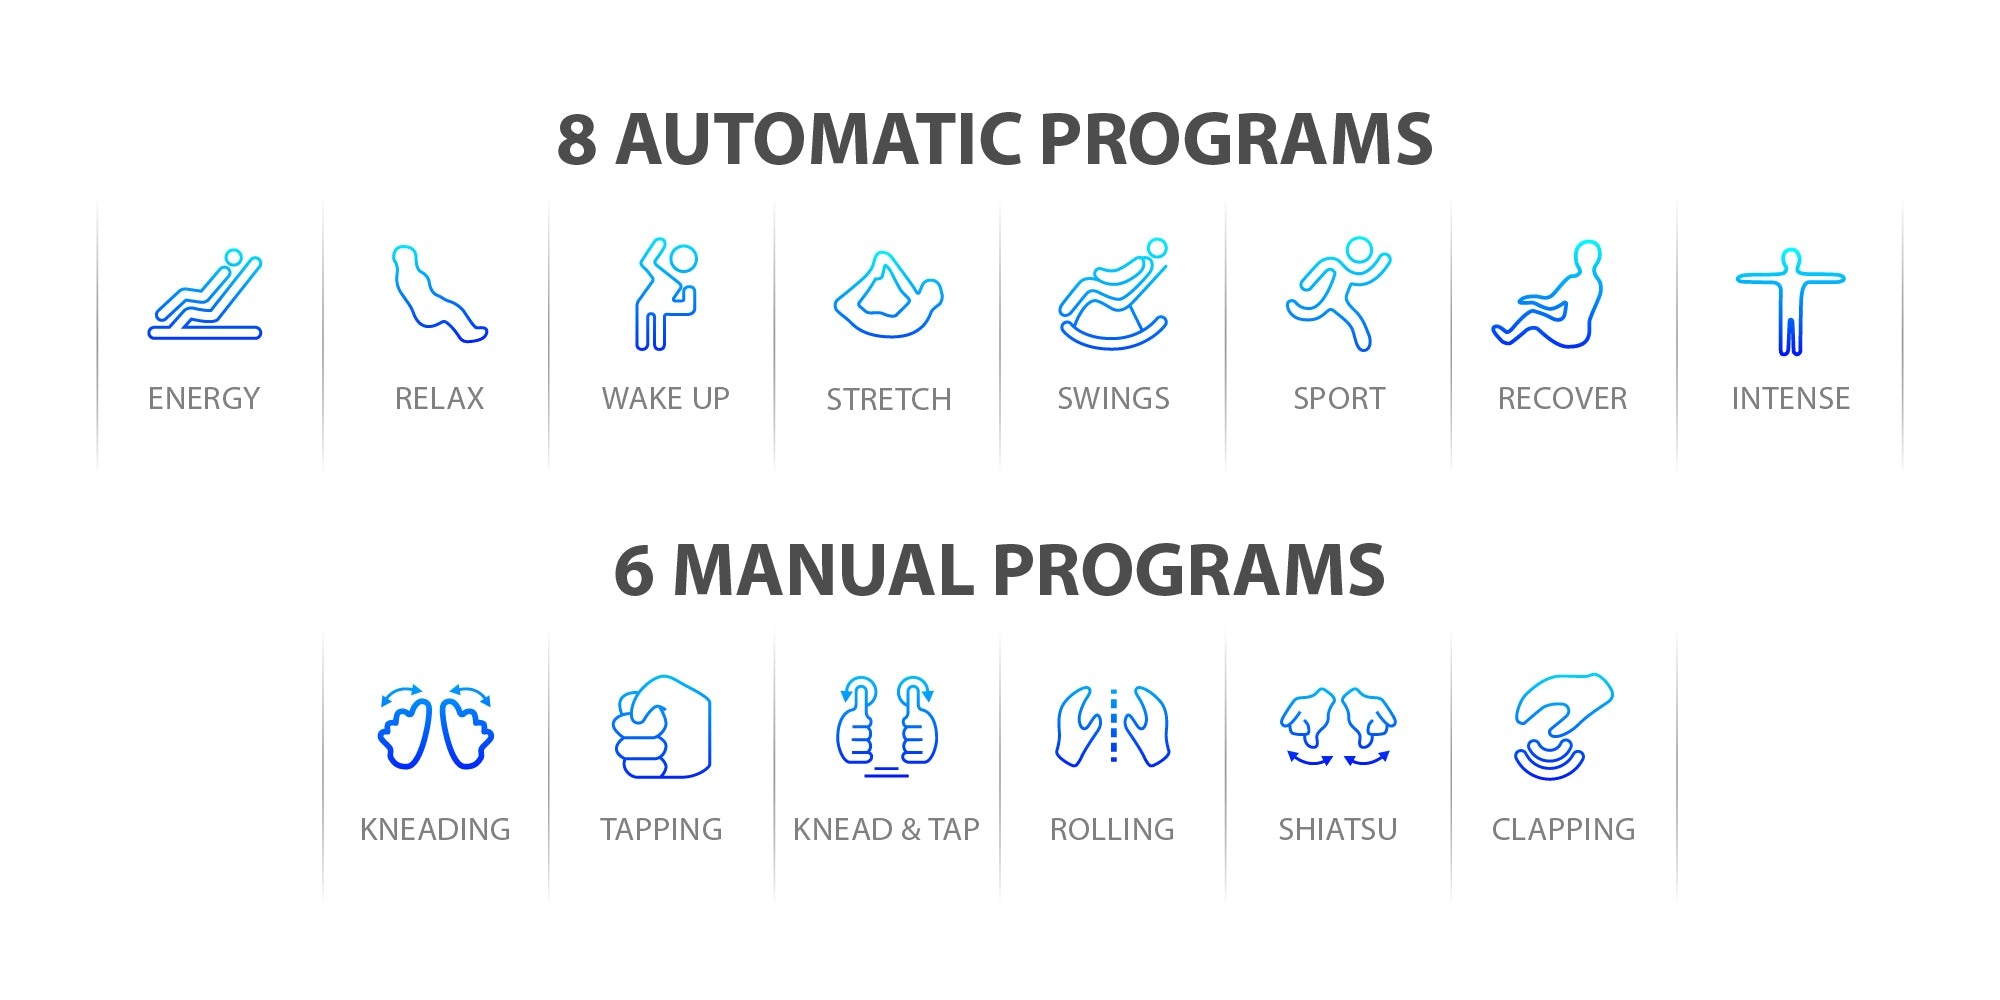 8 automatic programs and 6 manual programs